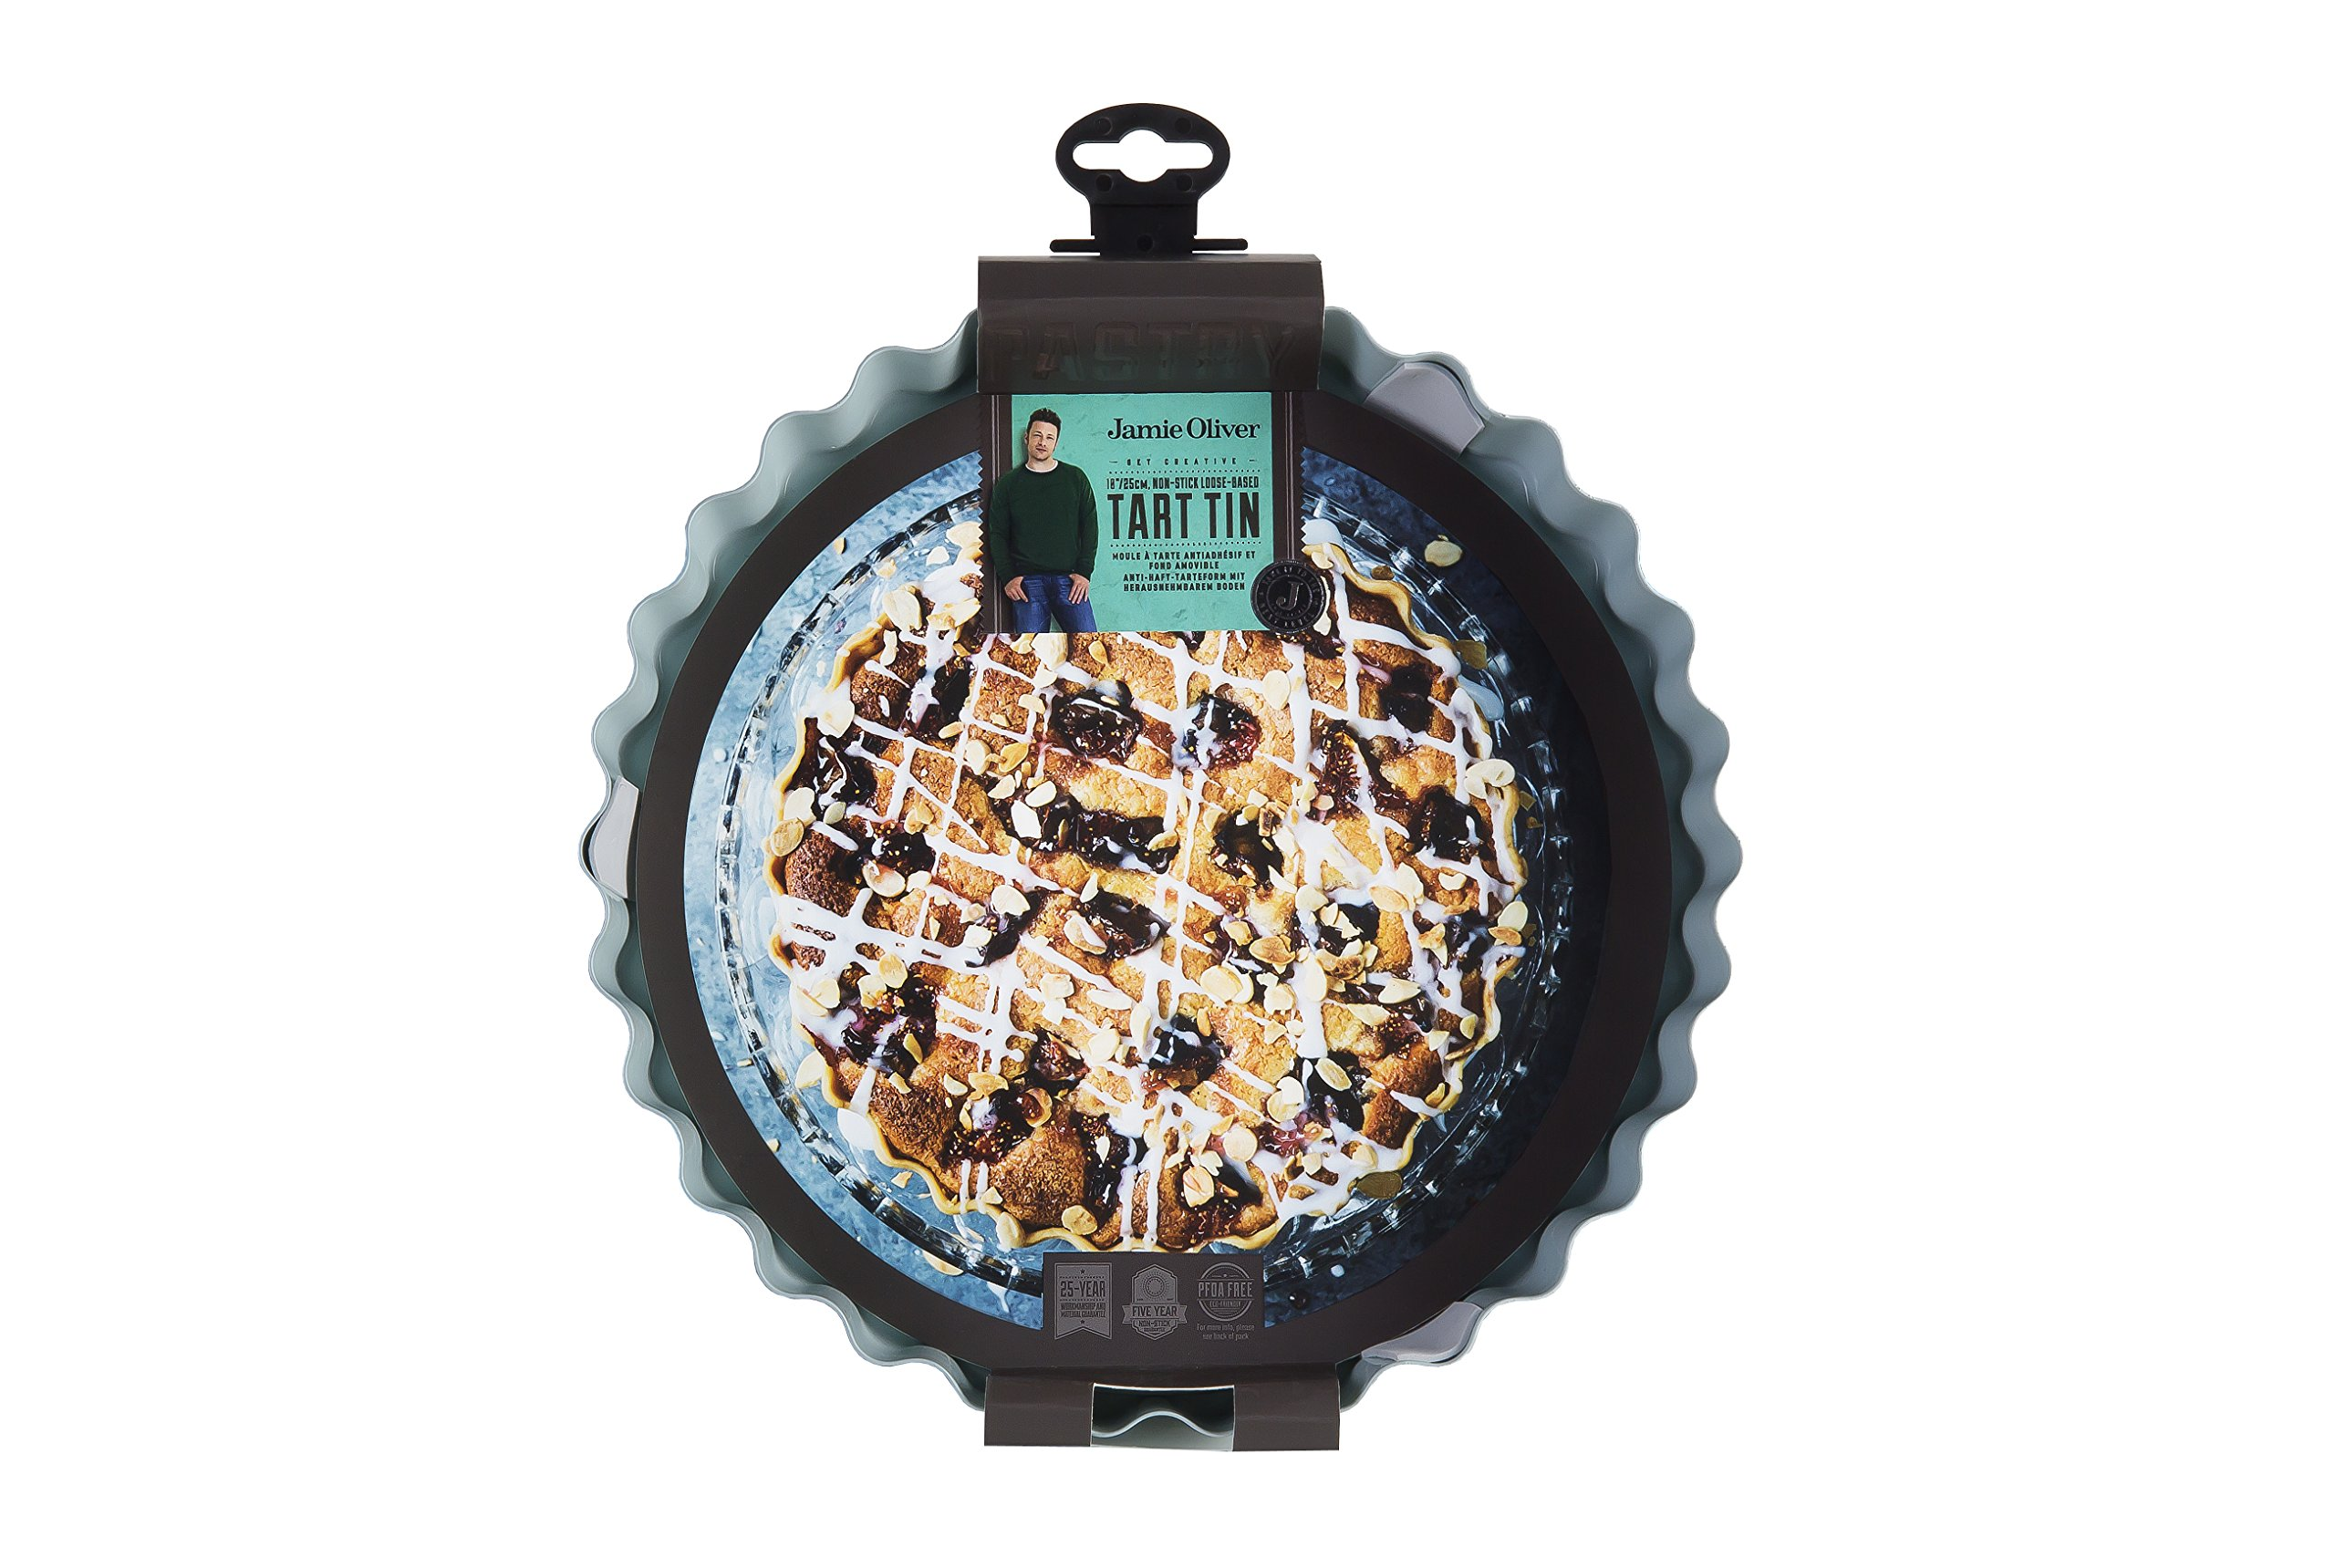 JAMIE OLIVER Tart Pie Tin, 10 Inches, Nonstick by Jamie Oliver (Image #2)